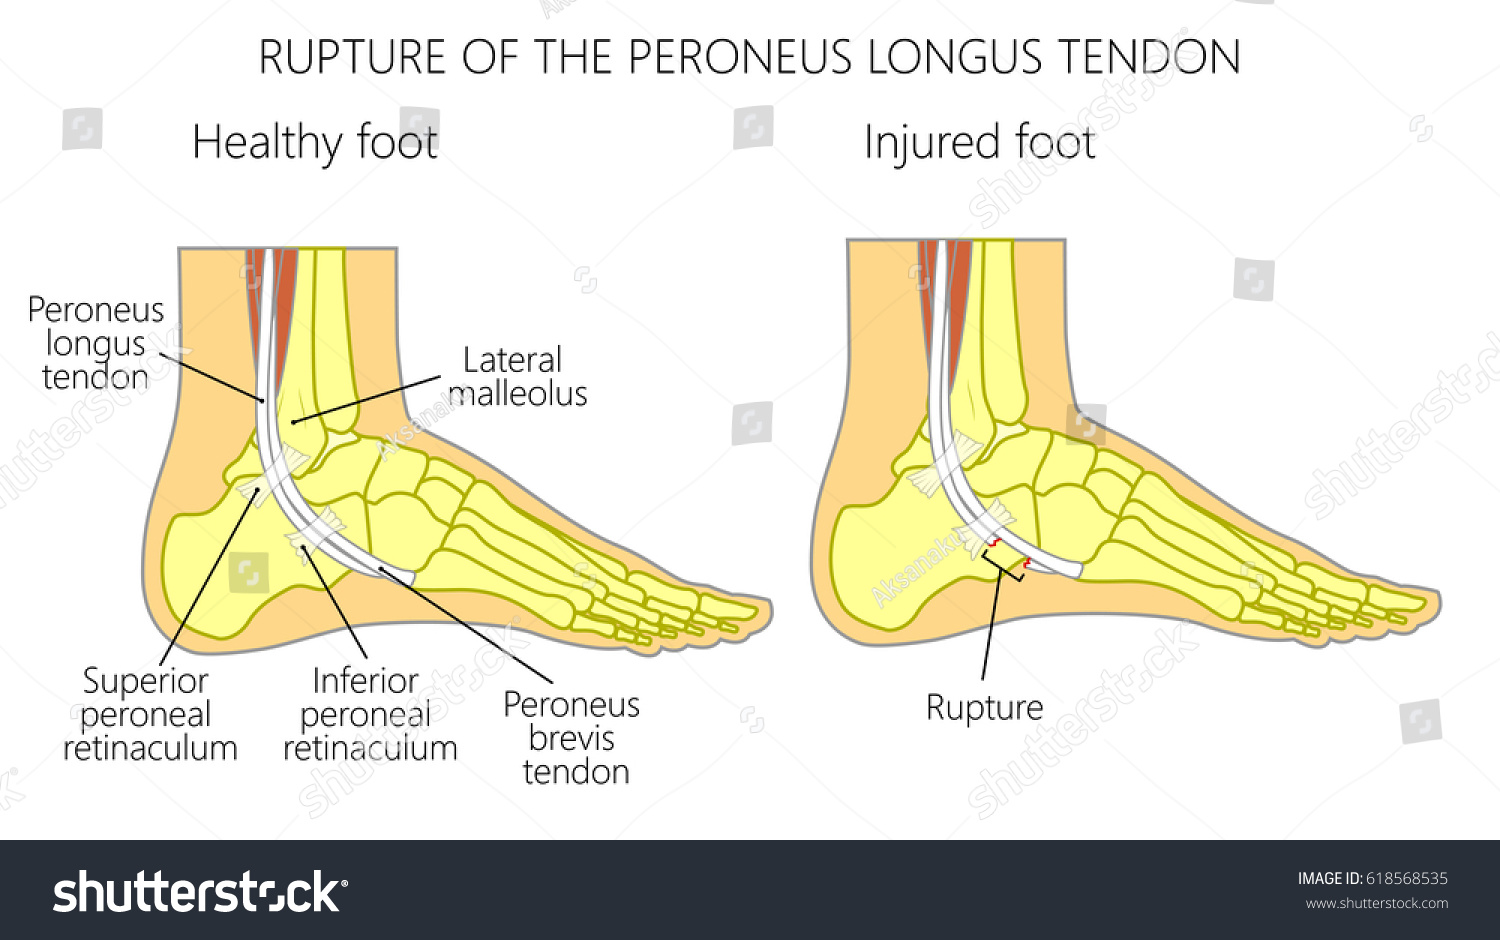 hight resolution of vector illustration of peroneal tendon injuries rupture of the peroneus longus tendon lateral ankle